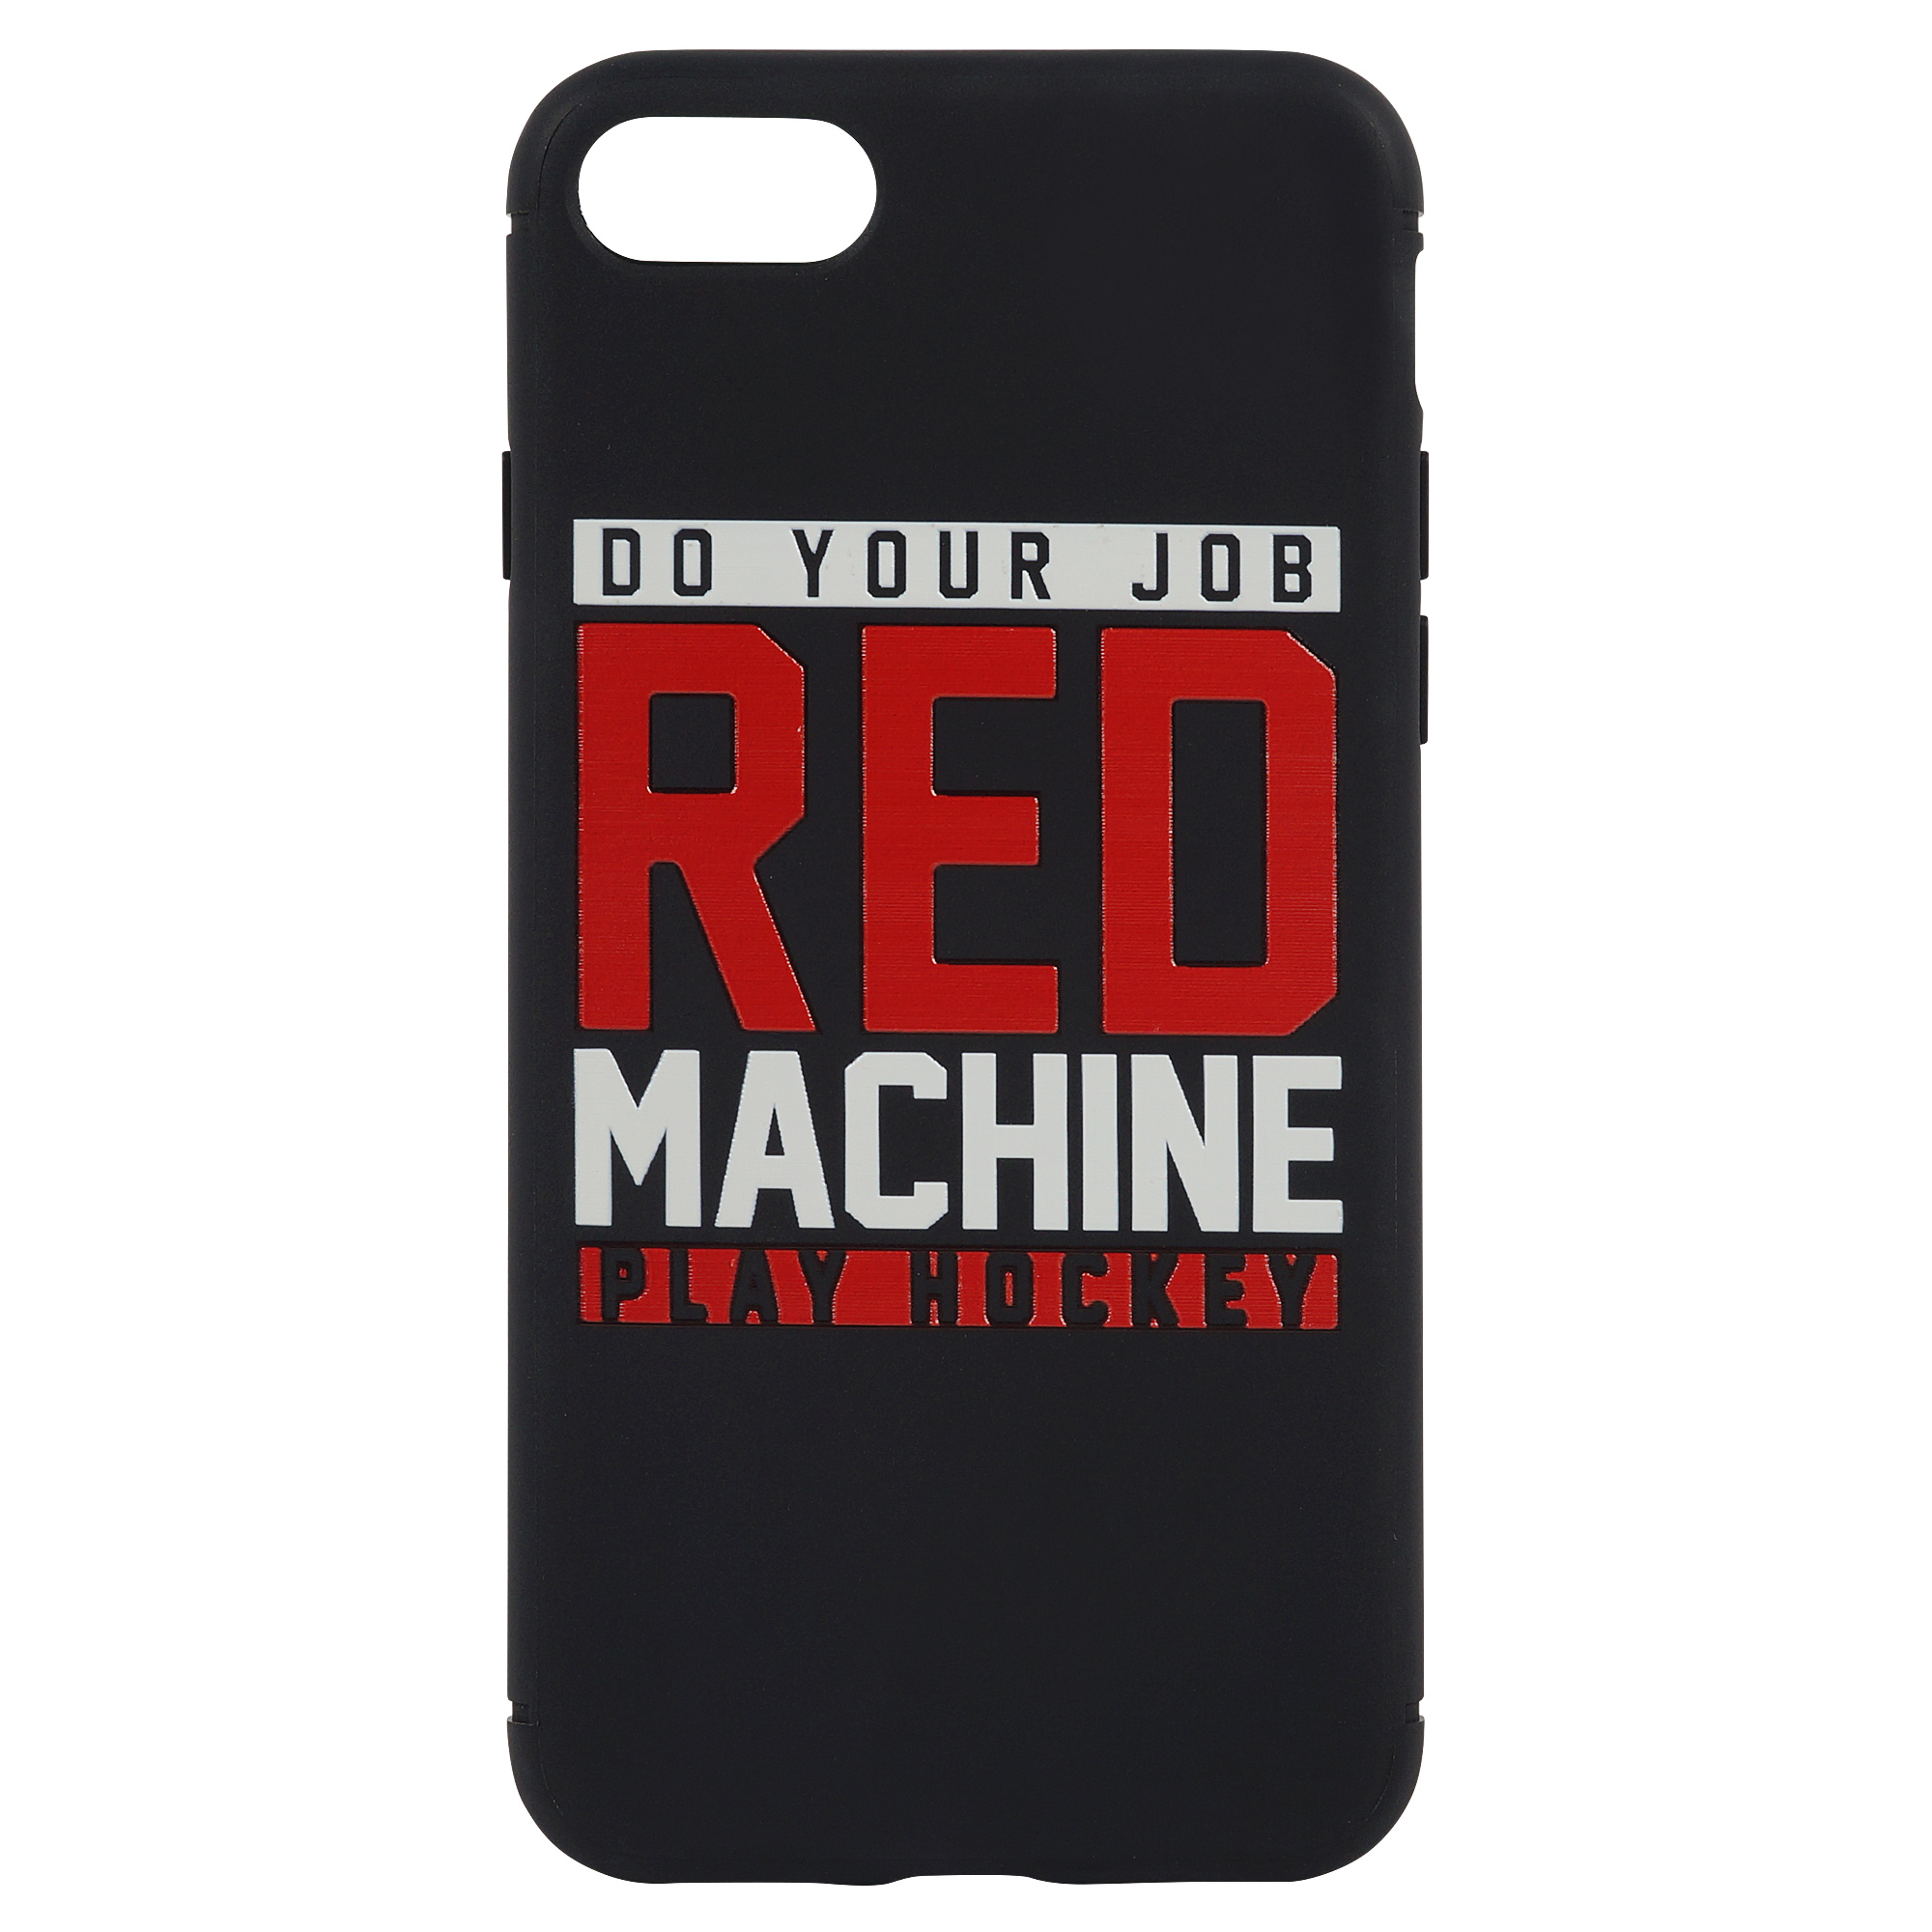 Чехол на iPhone Red Machine _7+/8+ ,арт.RM076, черный